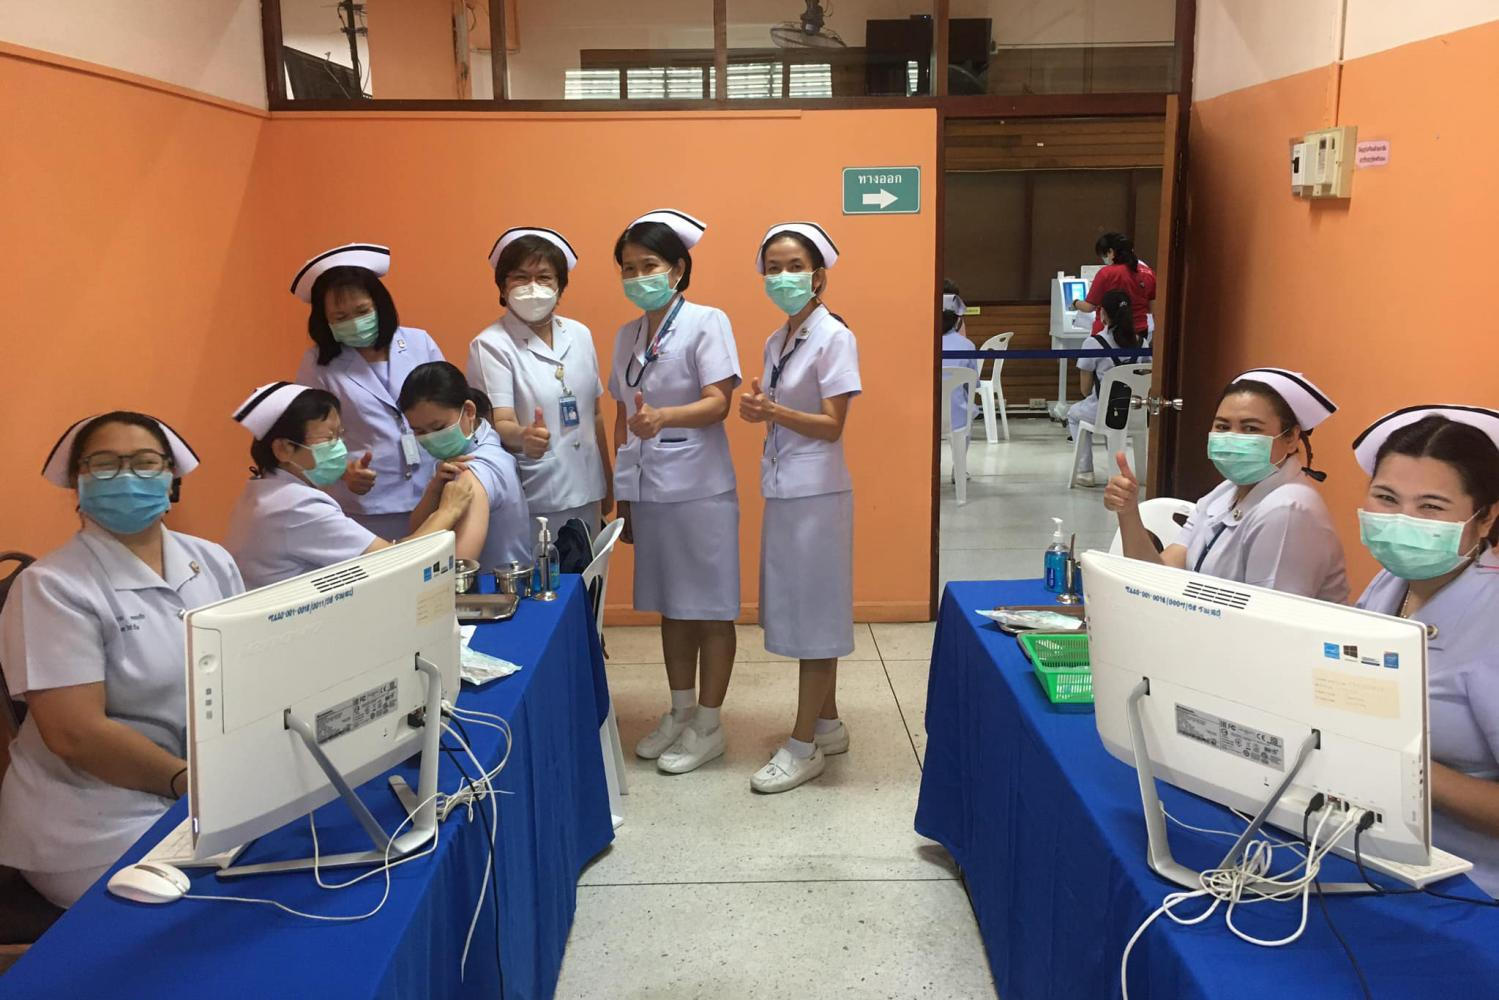 A group of nurses pose during Lampang's Covid-19 vaccination drive. The province began its vaccination drive earlier this month but the campaign was paused after reports of side effects. (Photo By Lampang Hospital)